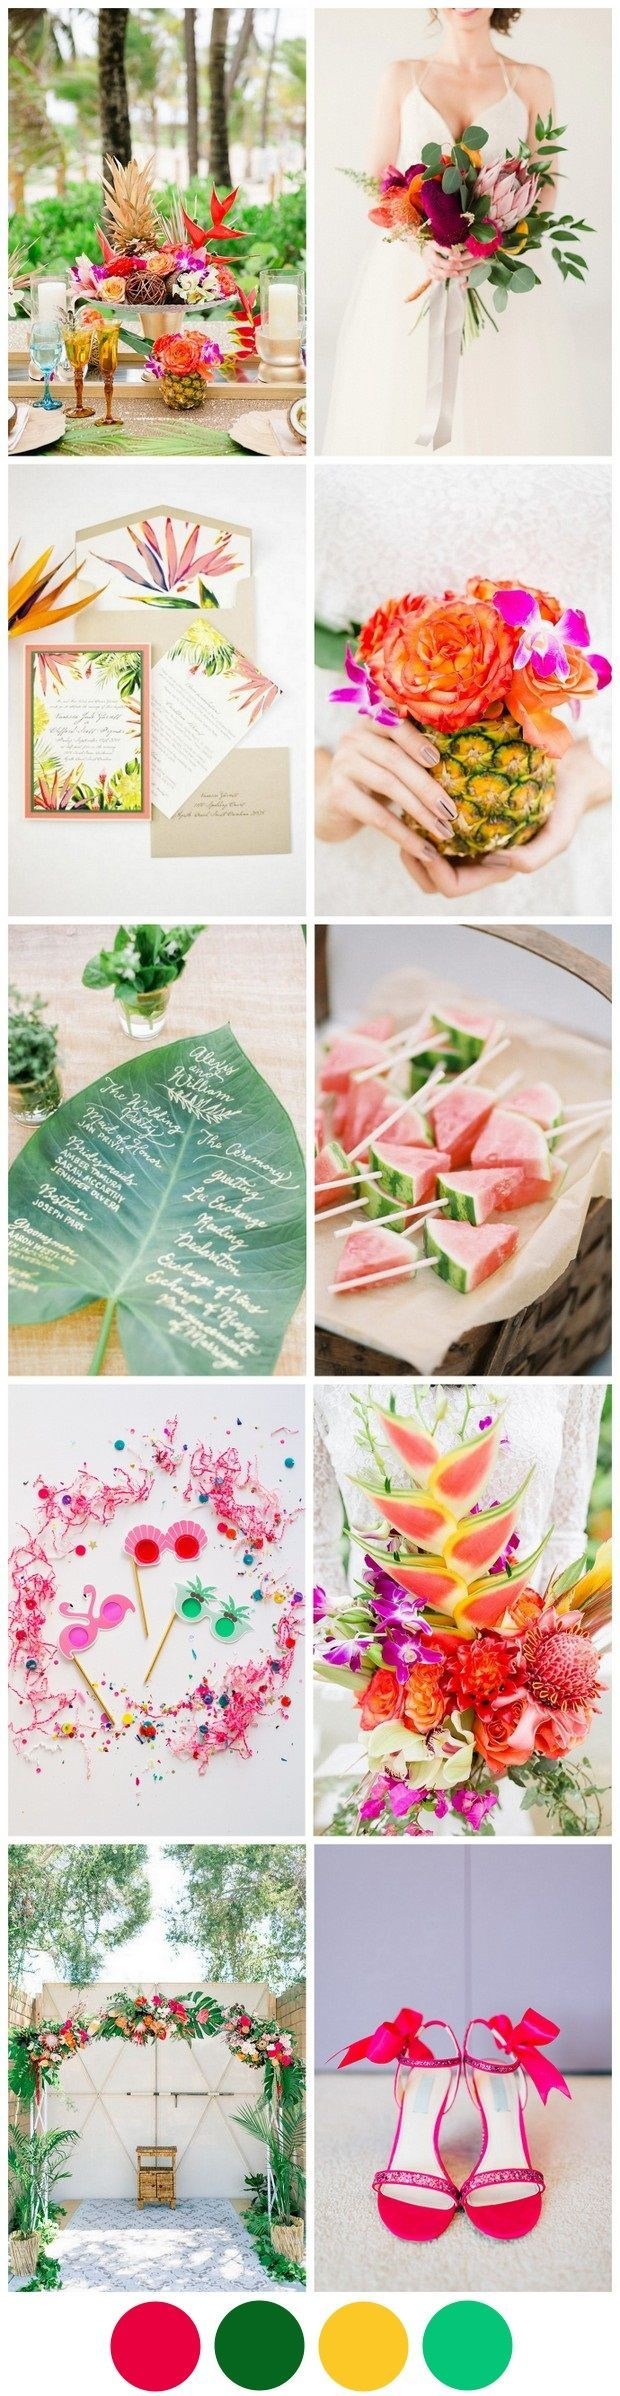 The seriously fun tropical wedding theme is a huge trend for weddings at the moment - find out how to pull it off for your Big Day next summer here!